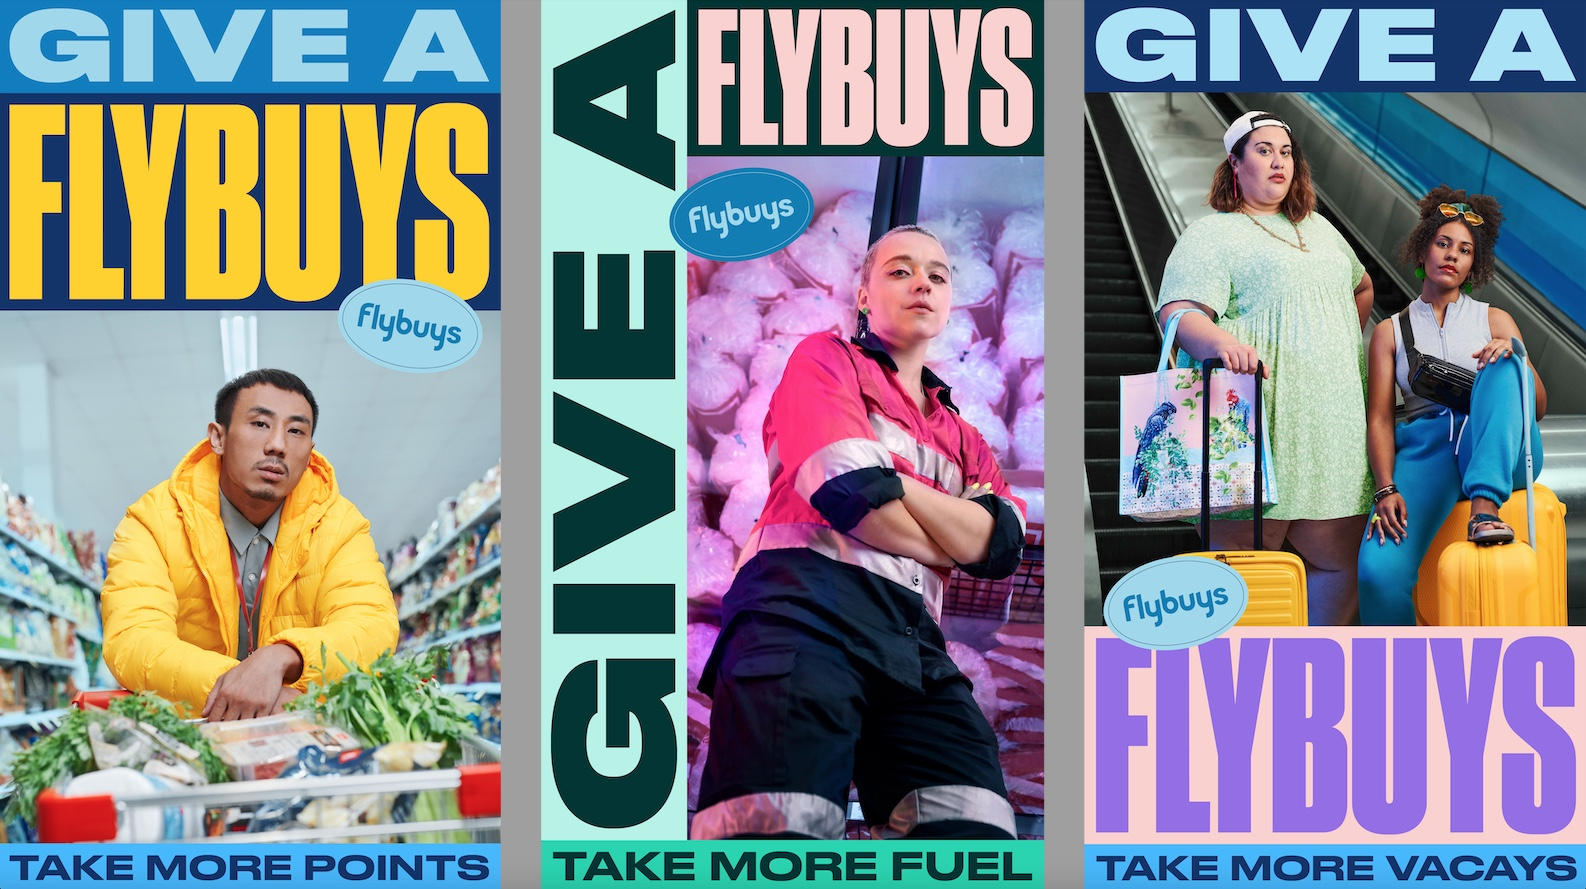 Seen+Noted: Flybuys captures 'Give a Flybuys' Aussie attitude in new work via CHE Proximity